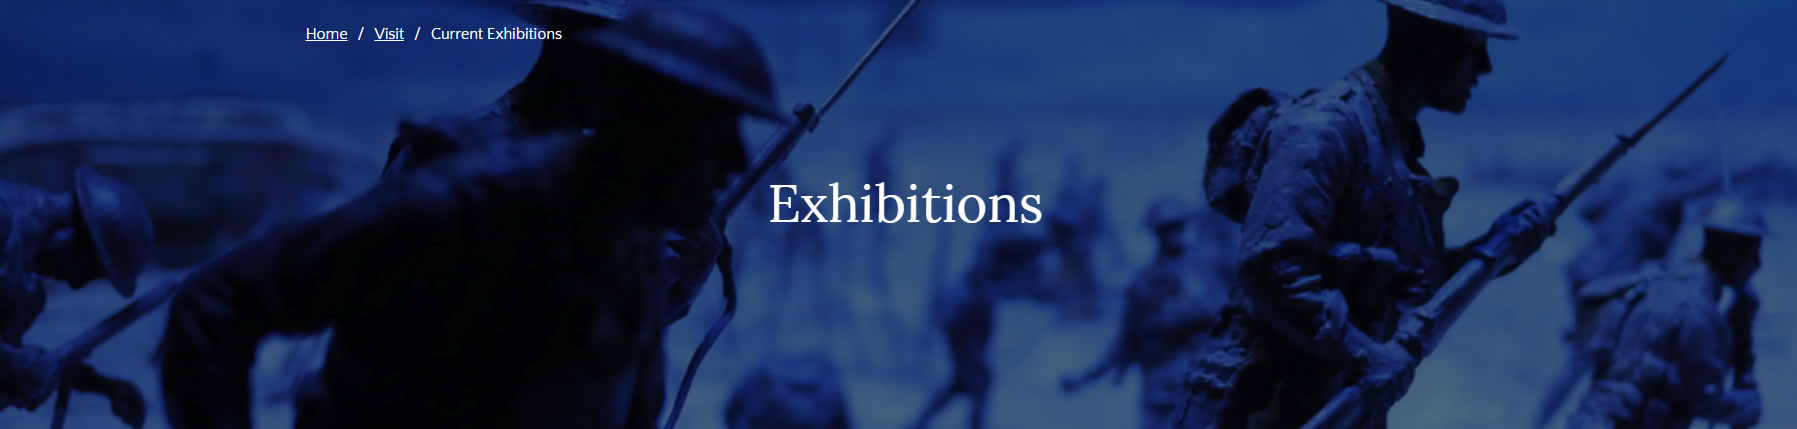 Current Exhibitions | Australian War Memorial